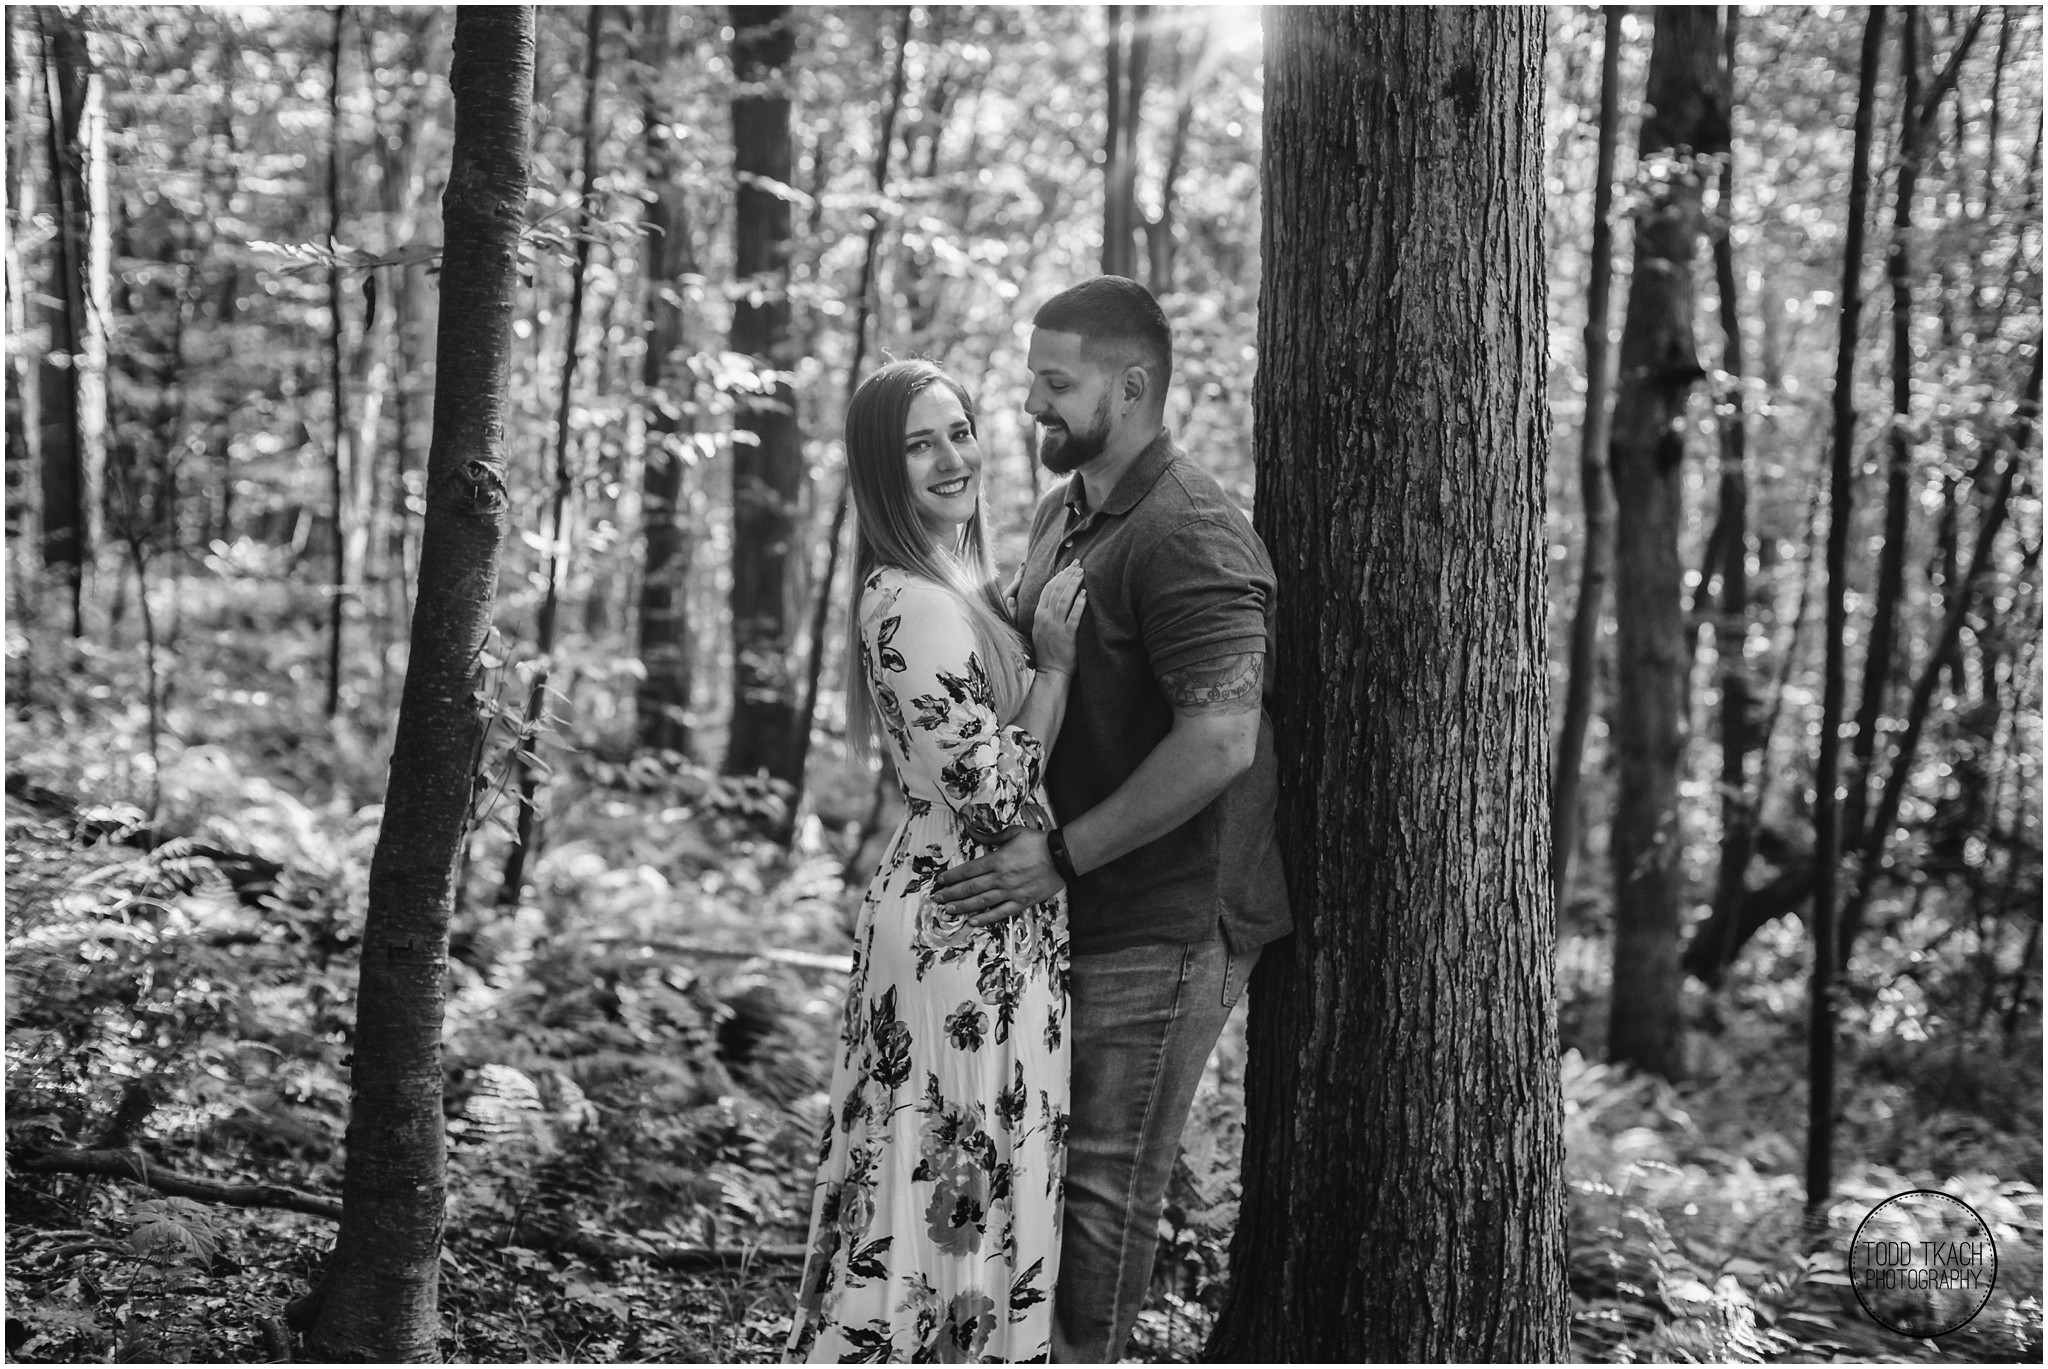 Kim & Brandon Engagement - Forest Black and White Portrait